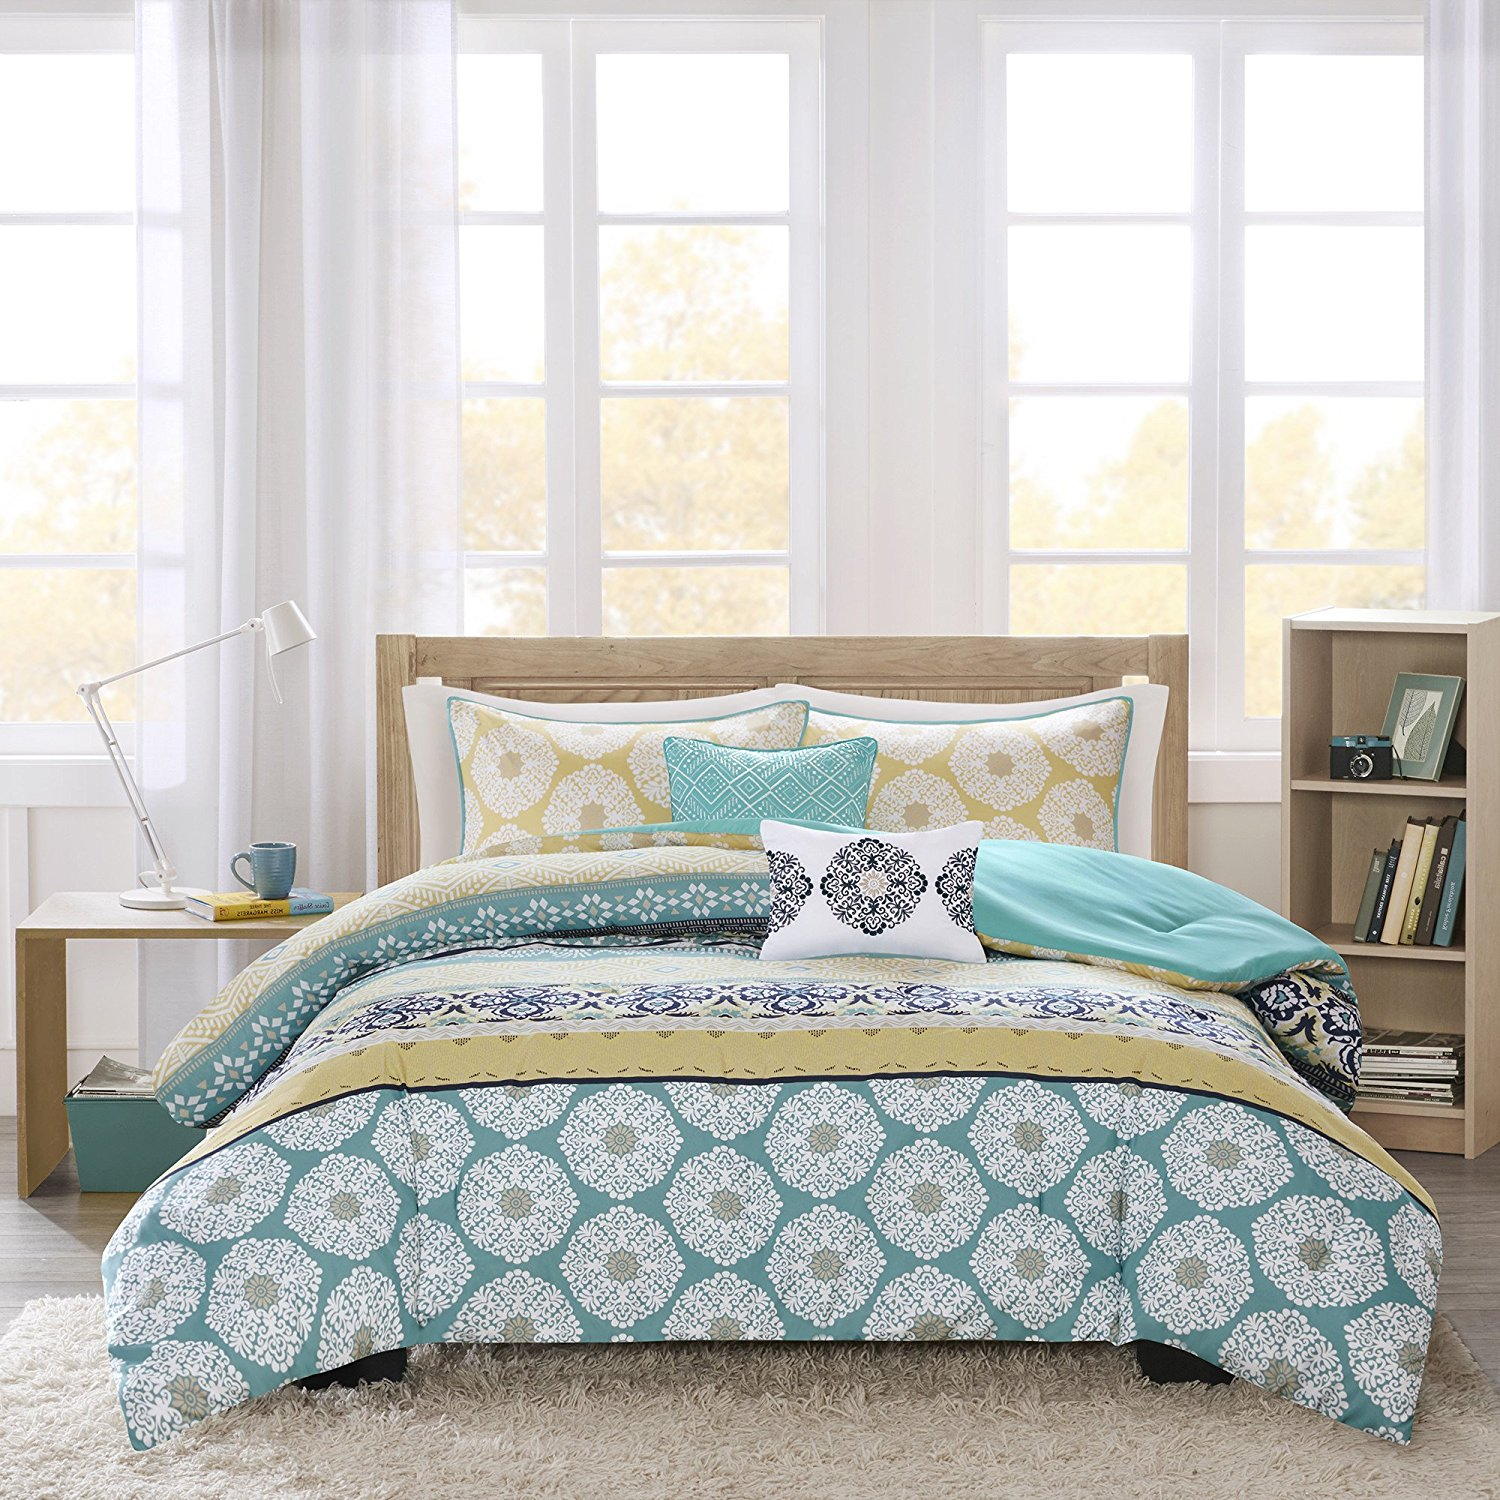 Cheap Blue And Yellow Comforter Find Blue And Yellow Comforter Deals On Line At Alibaba Com